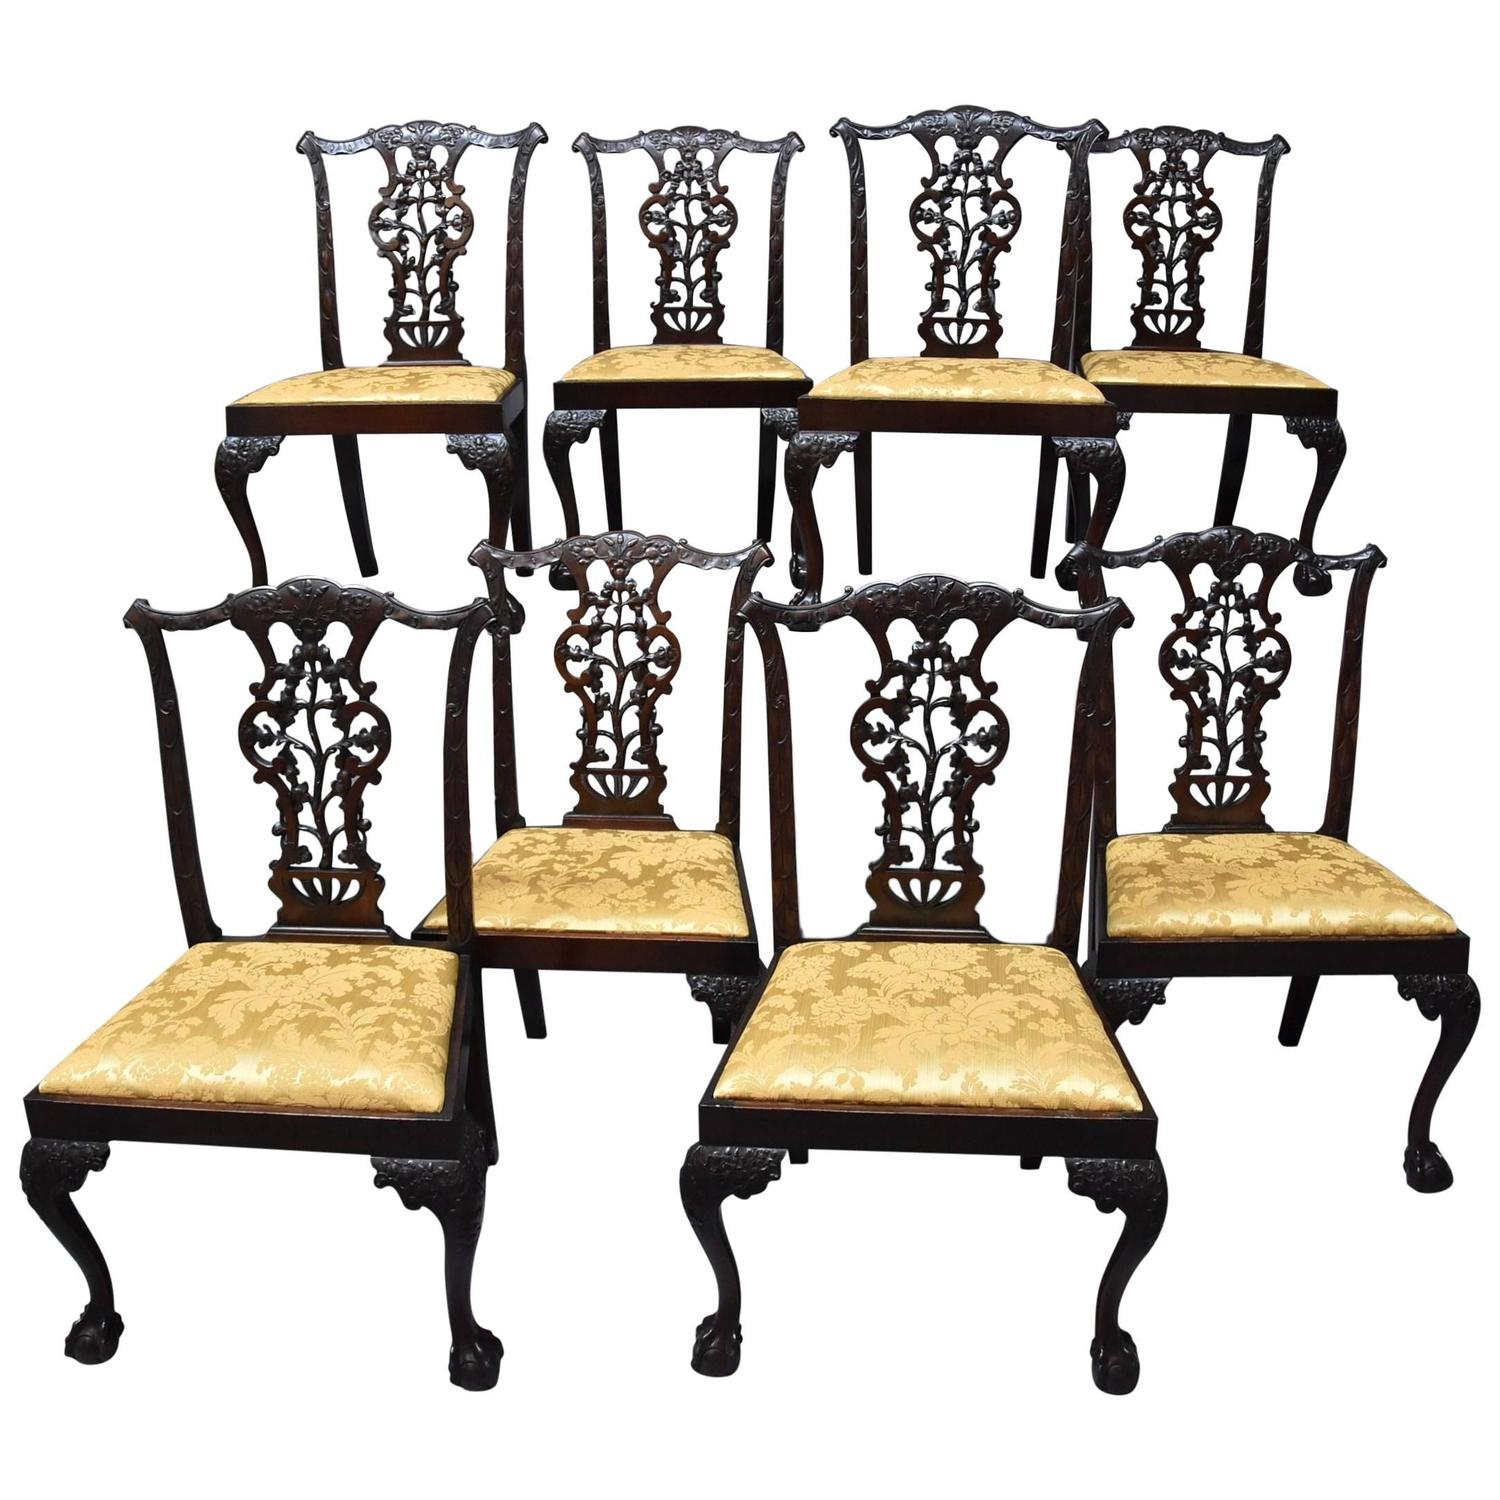 Chippendale Dining Room Chairs: Superb Quality Set Of Eight Chippendale Style Mahogany